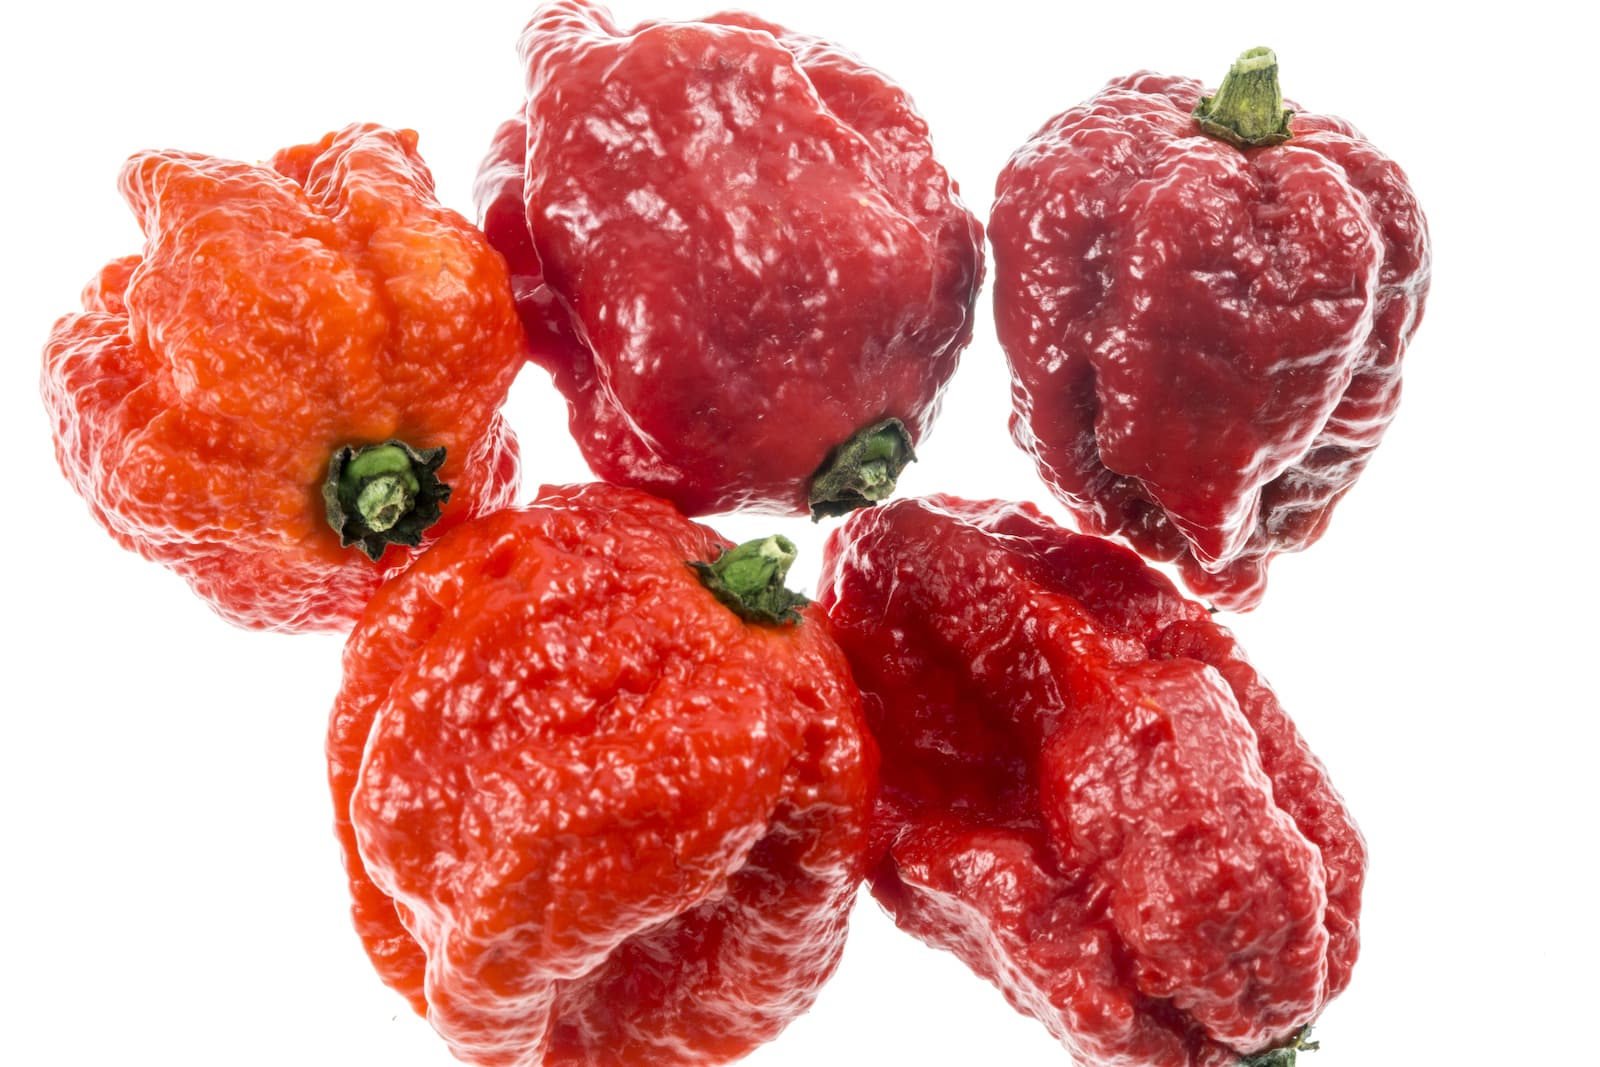 The Carolina Reaper: Serious Sizzle From The South